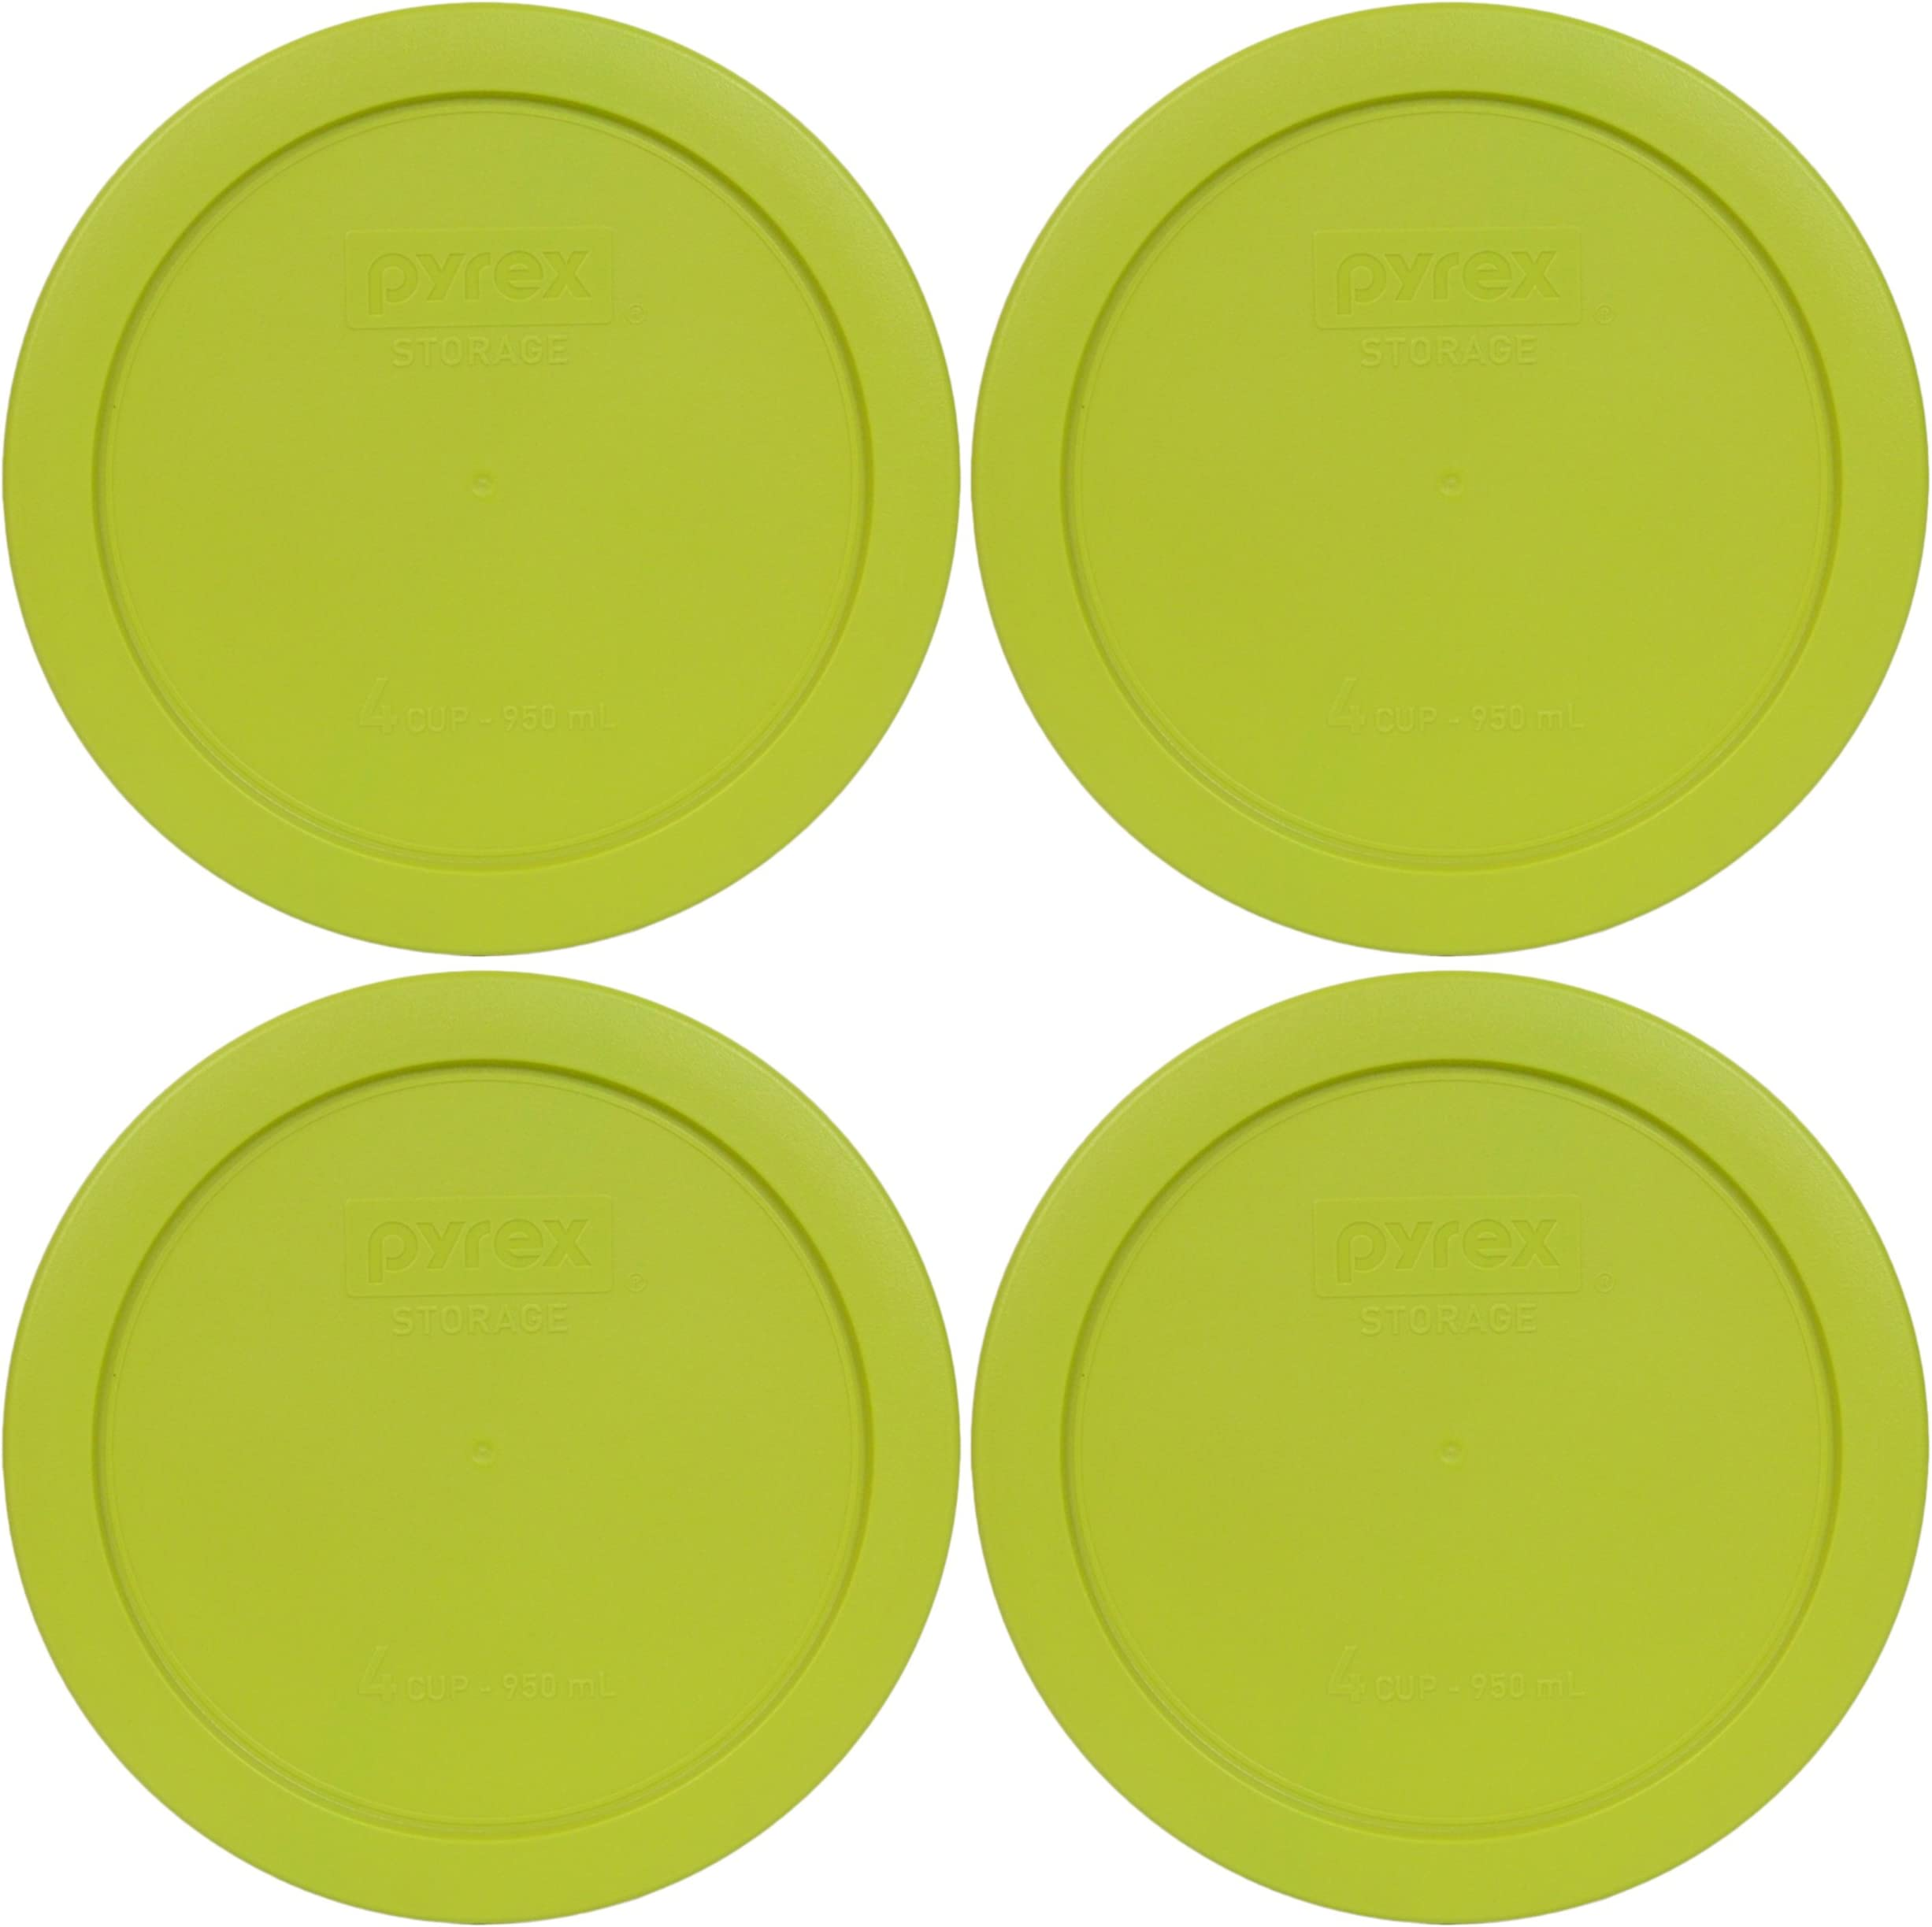 2-Butter Yellow, 2-Pumpkin Orange, 2-Edamame Green Pyrex 7201-PC Round 4 Cup Storage Container Lids for Glass Bowls